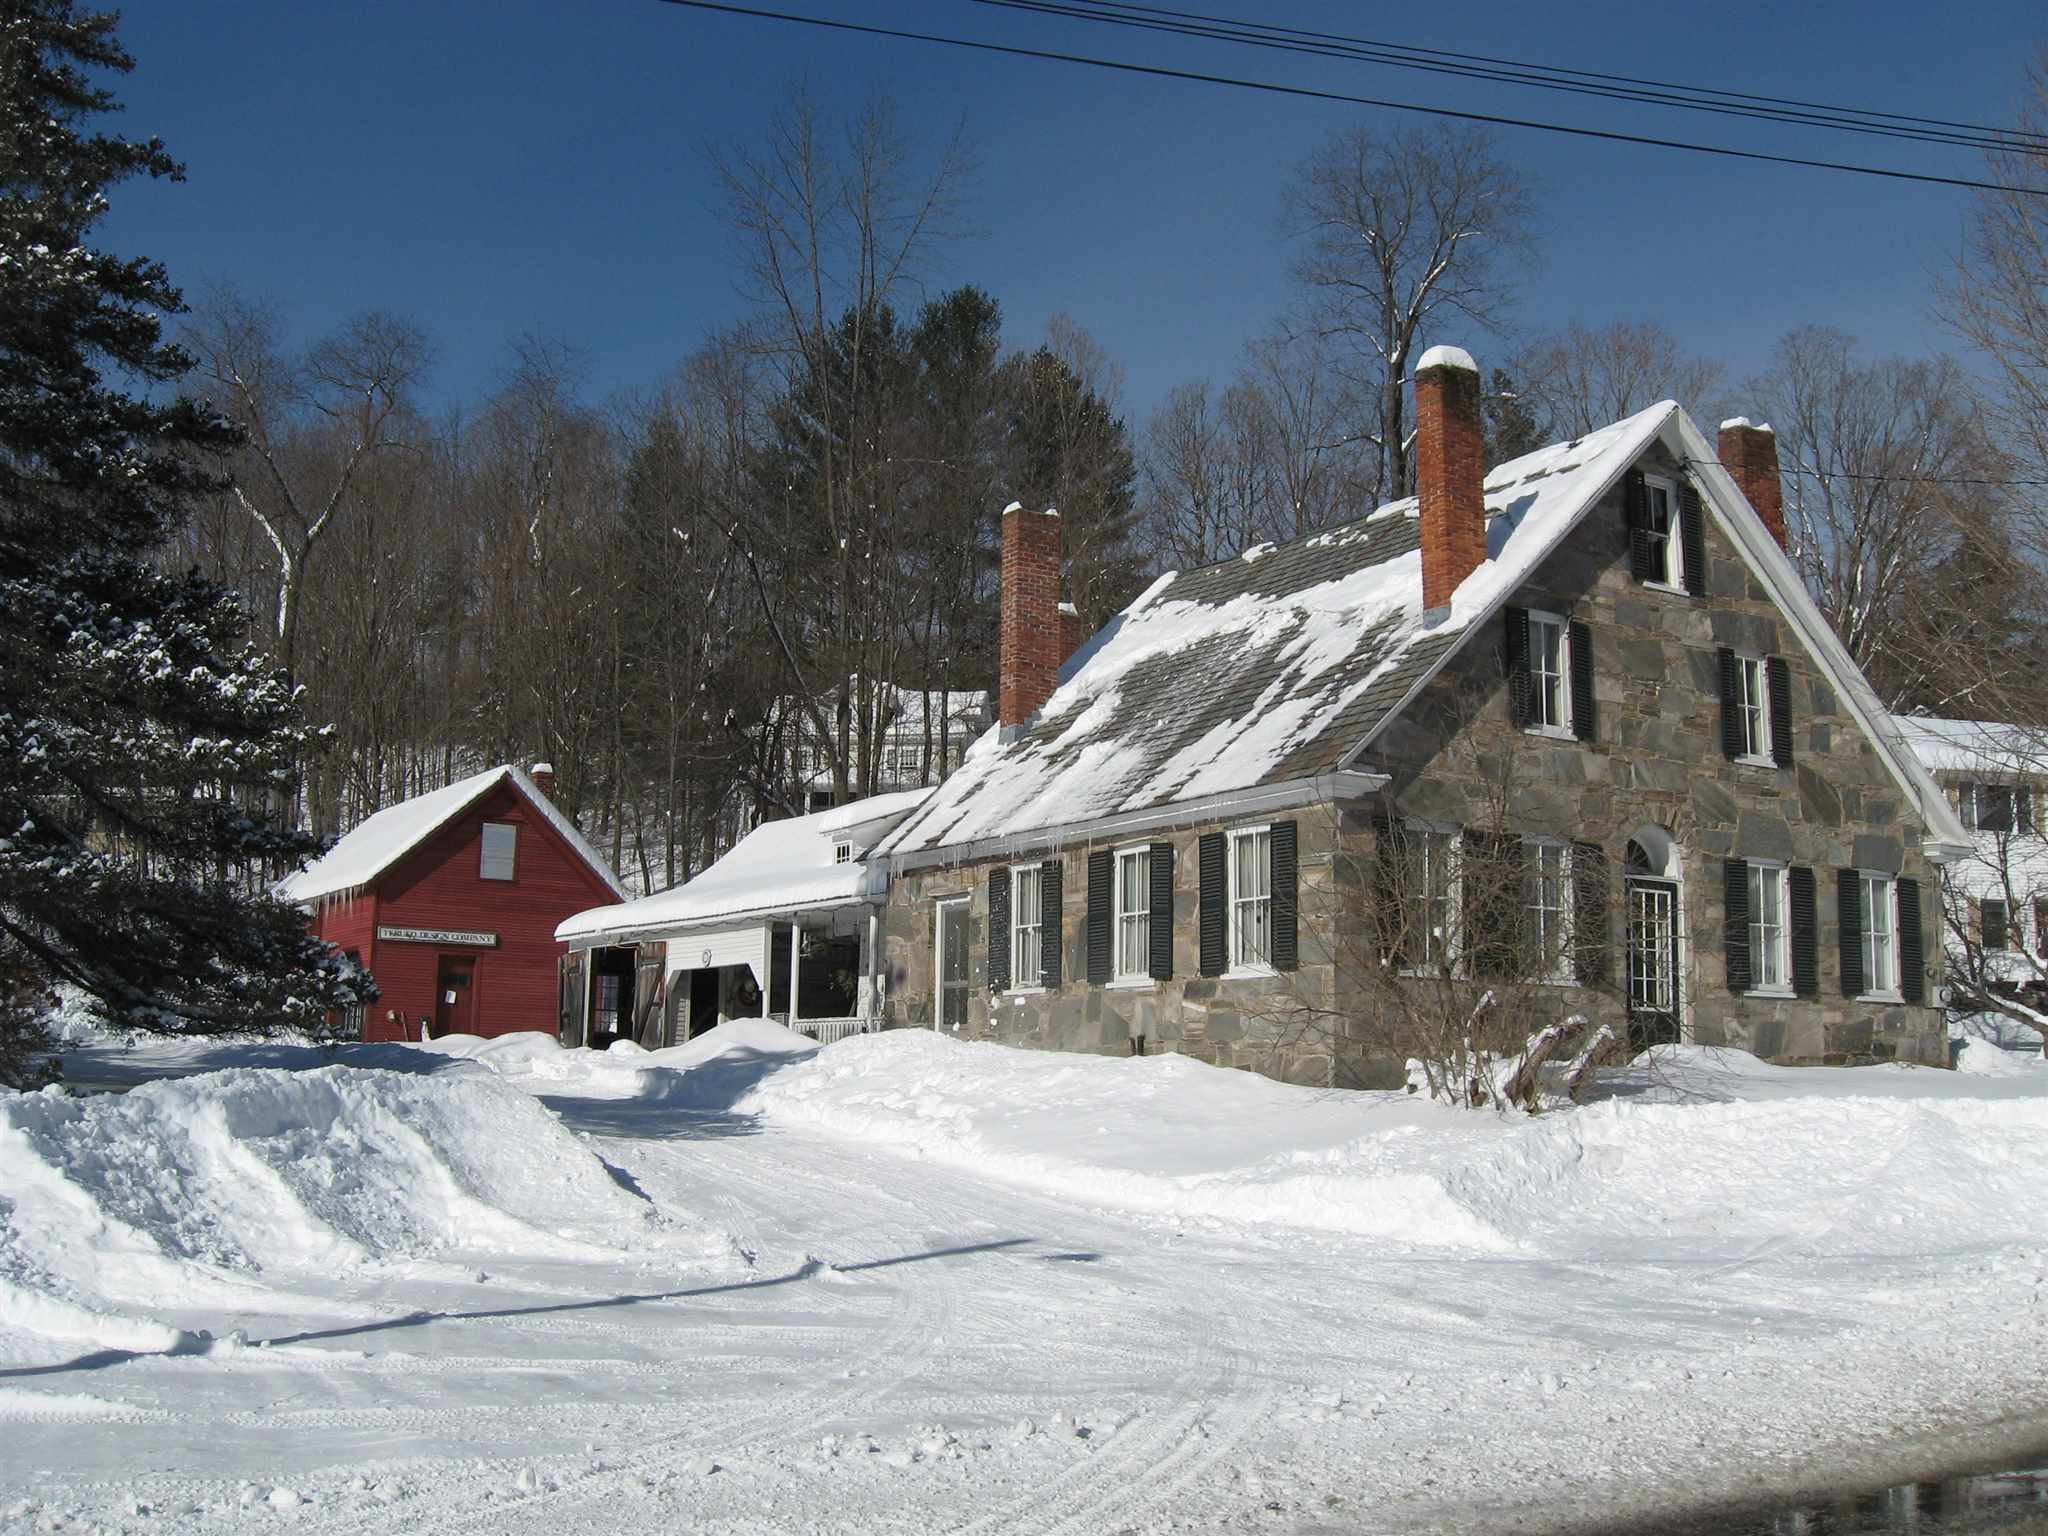 CAVENDISH VT Homes for sale